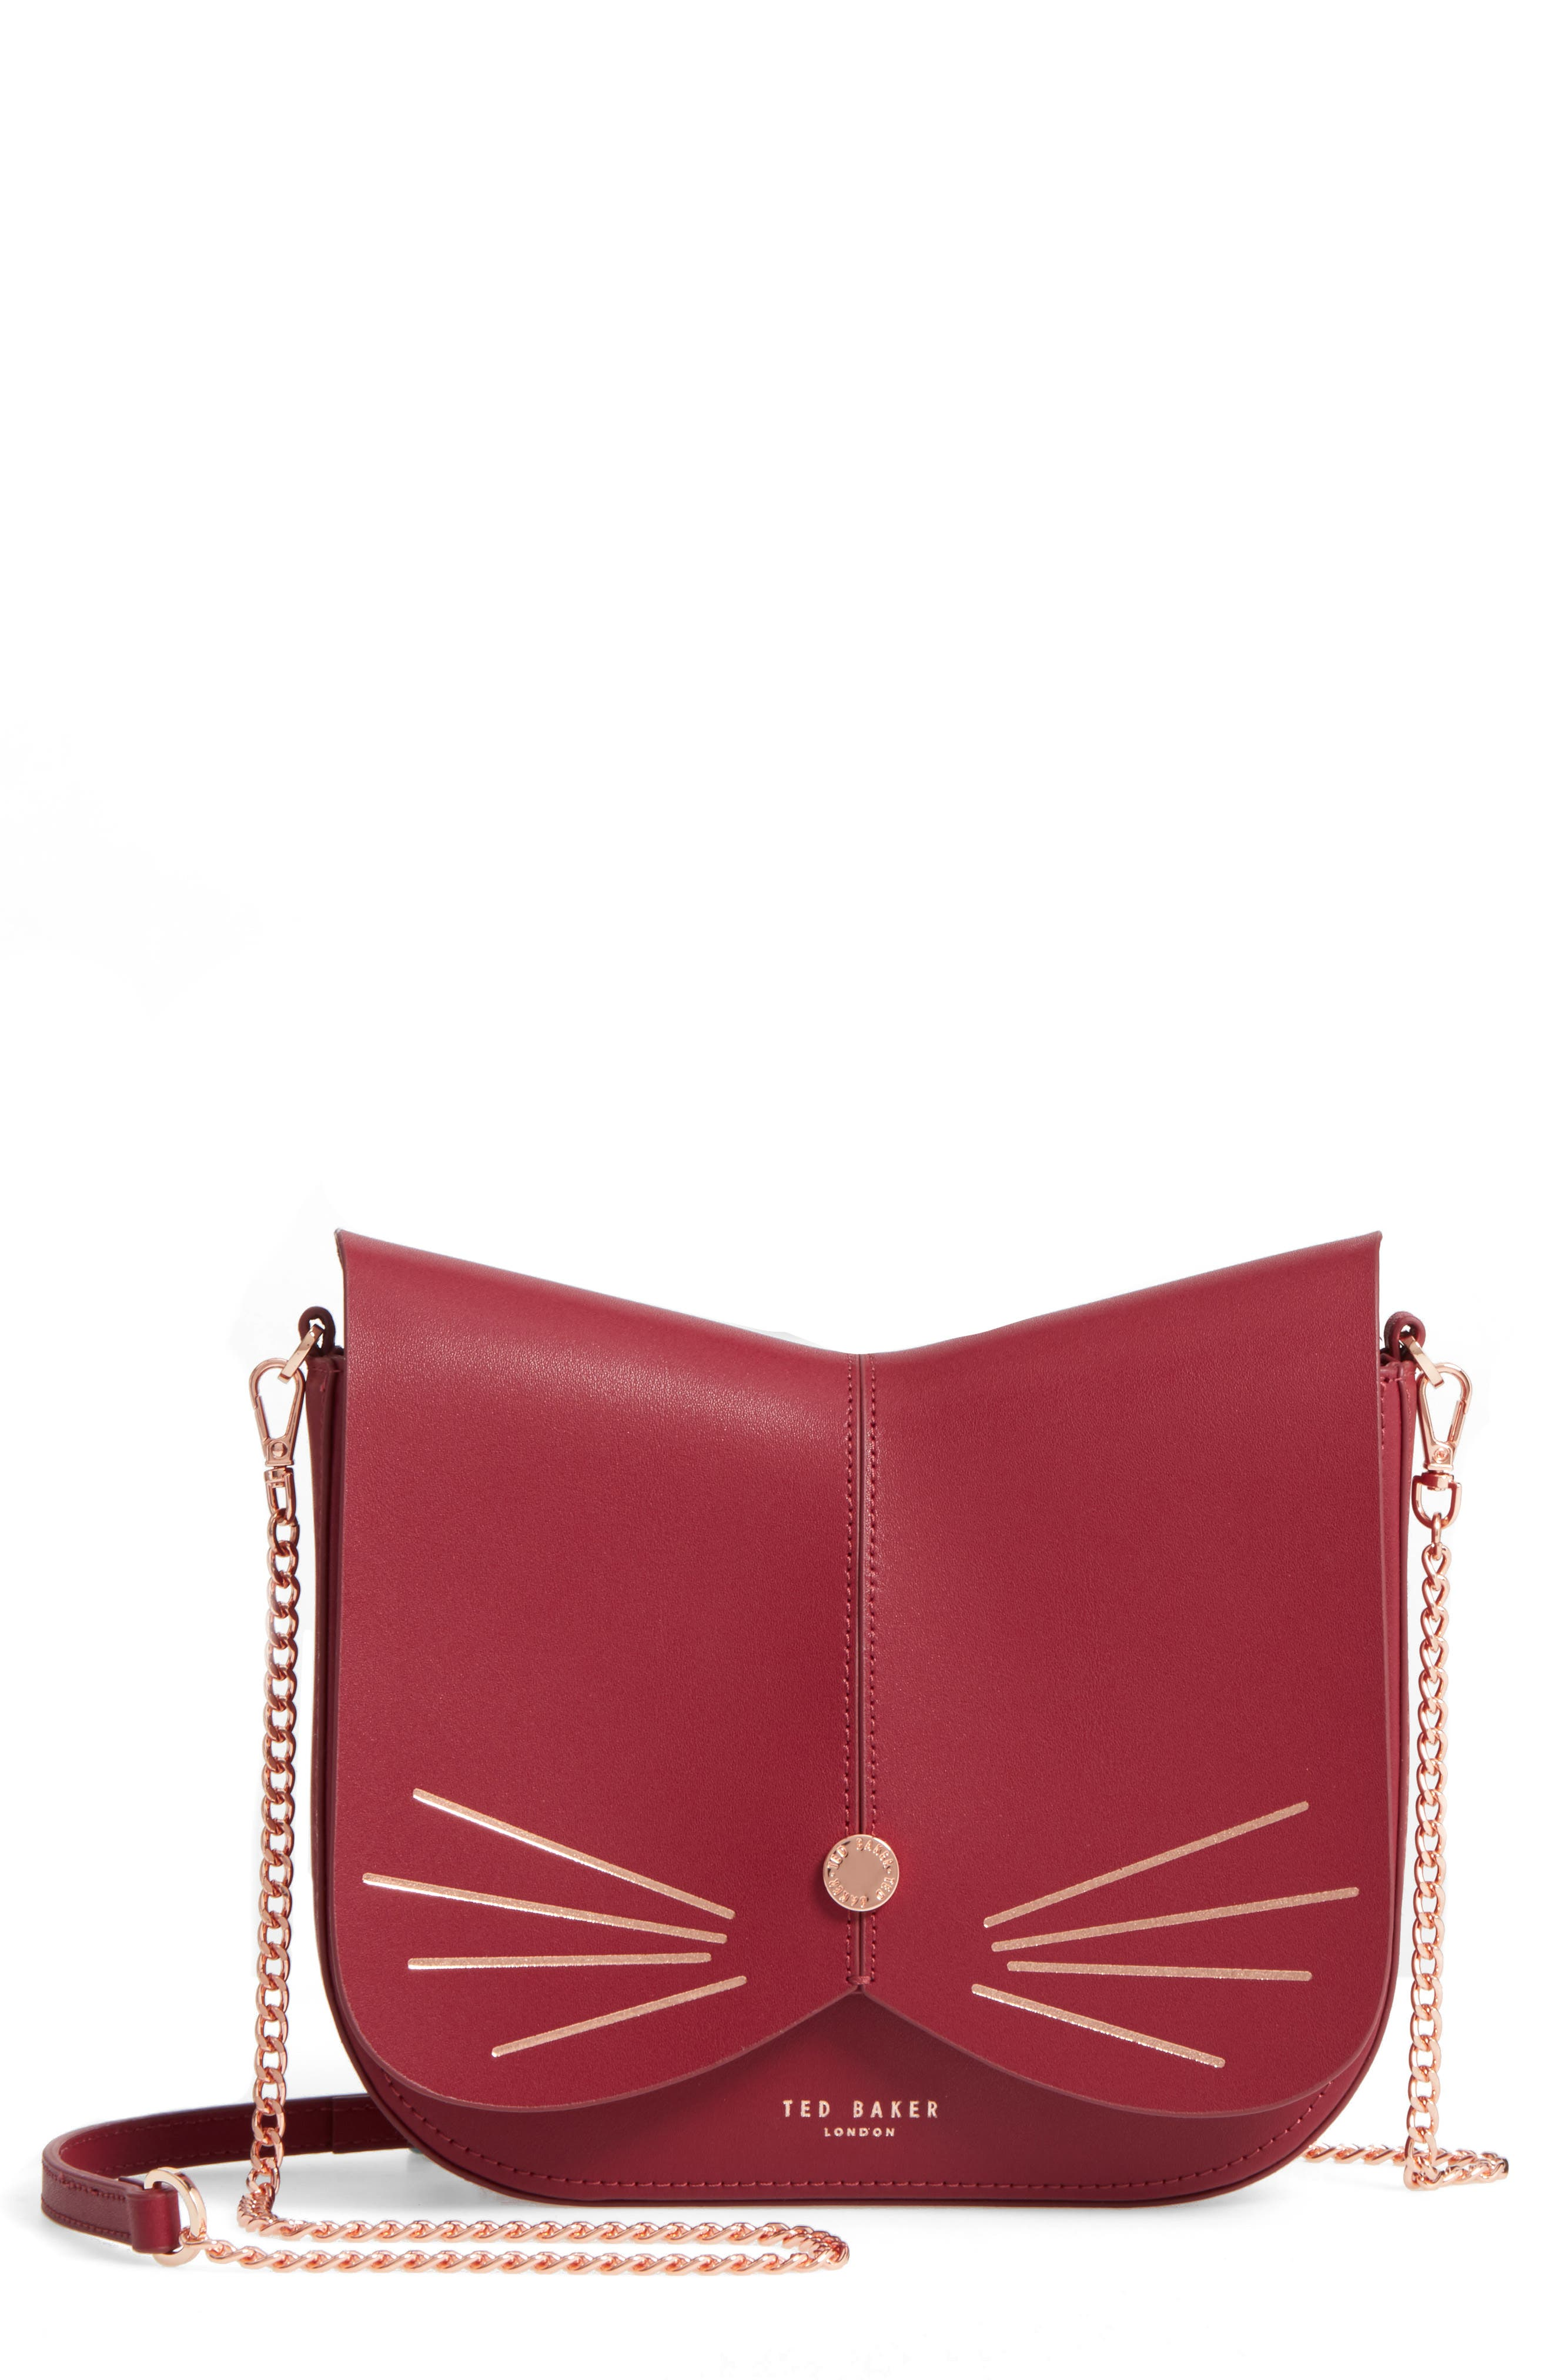 Kittii Cat Leather Crossbody Bag,                             Main thumbnail 1, color,                             Oxblood